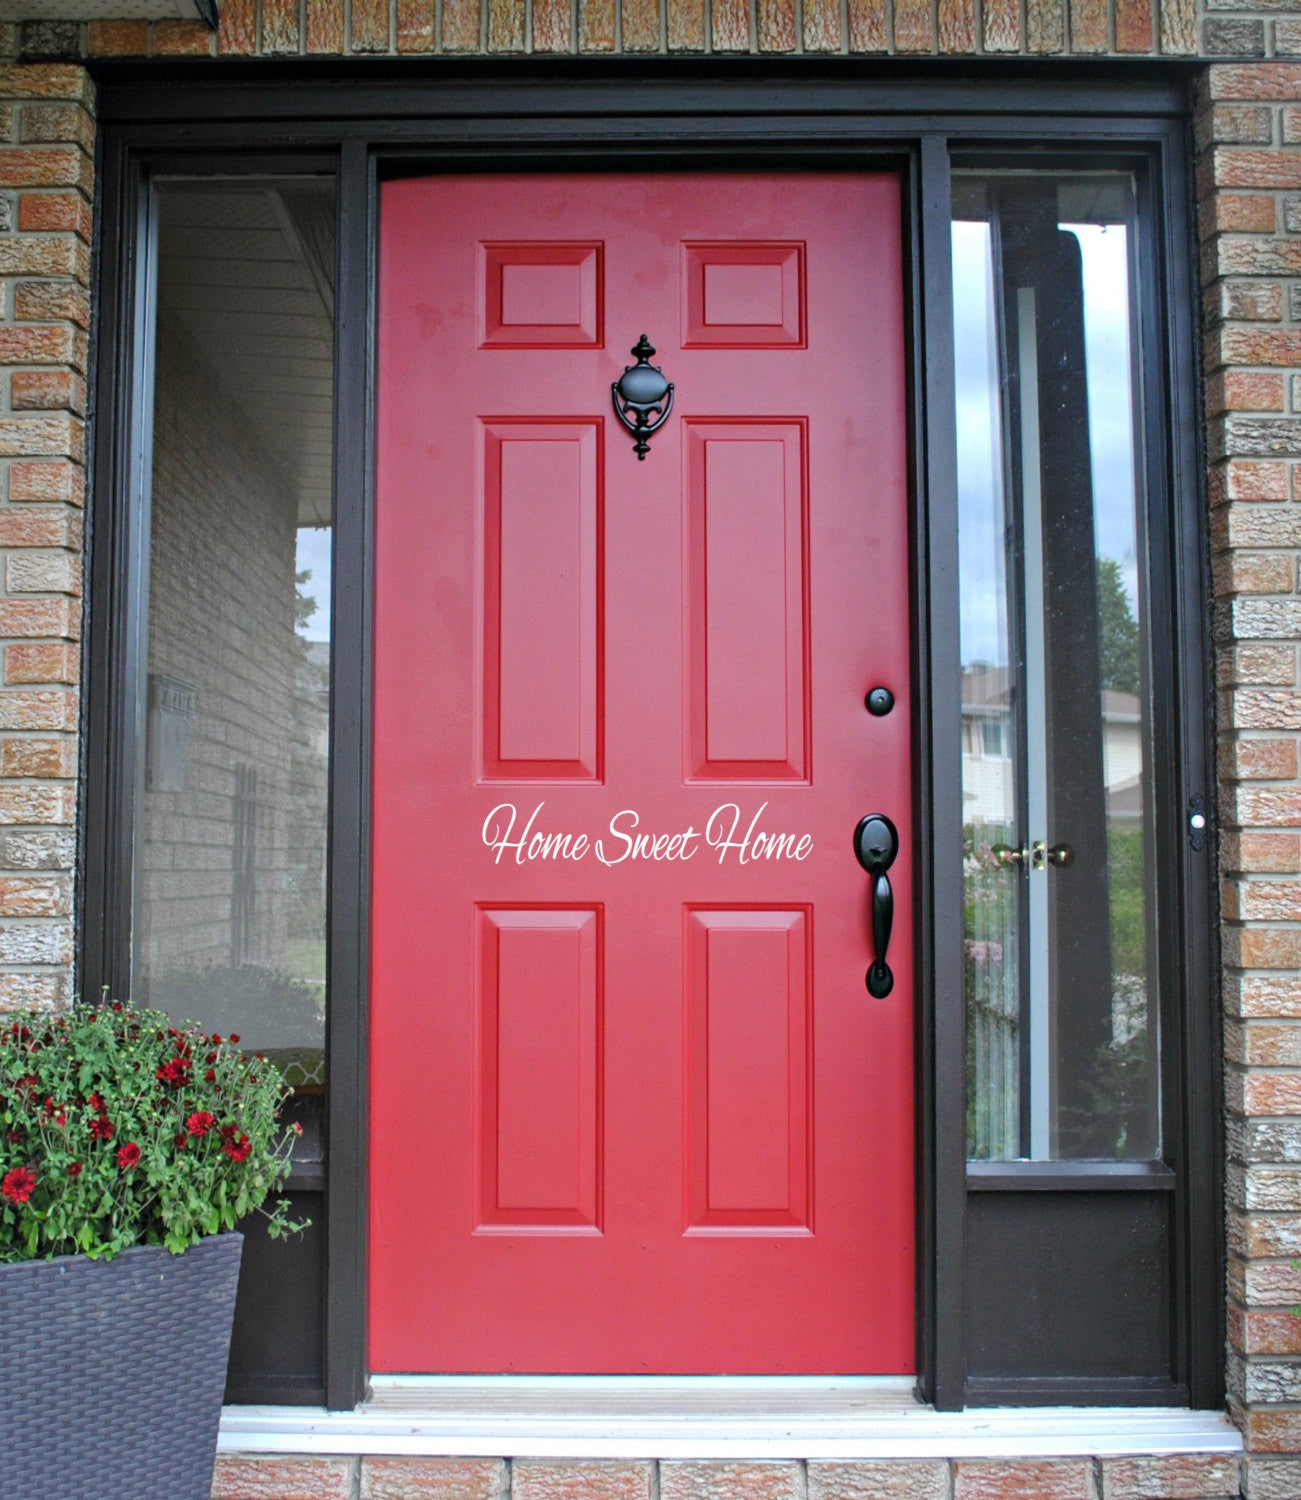 Home Sweet Home Door Decal - East Coast Vinyl Decals, Inc.